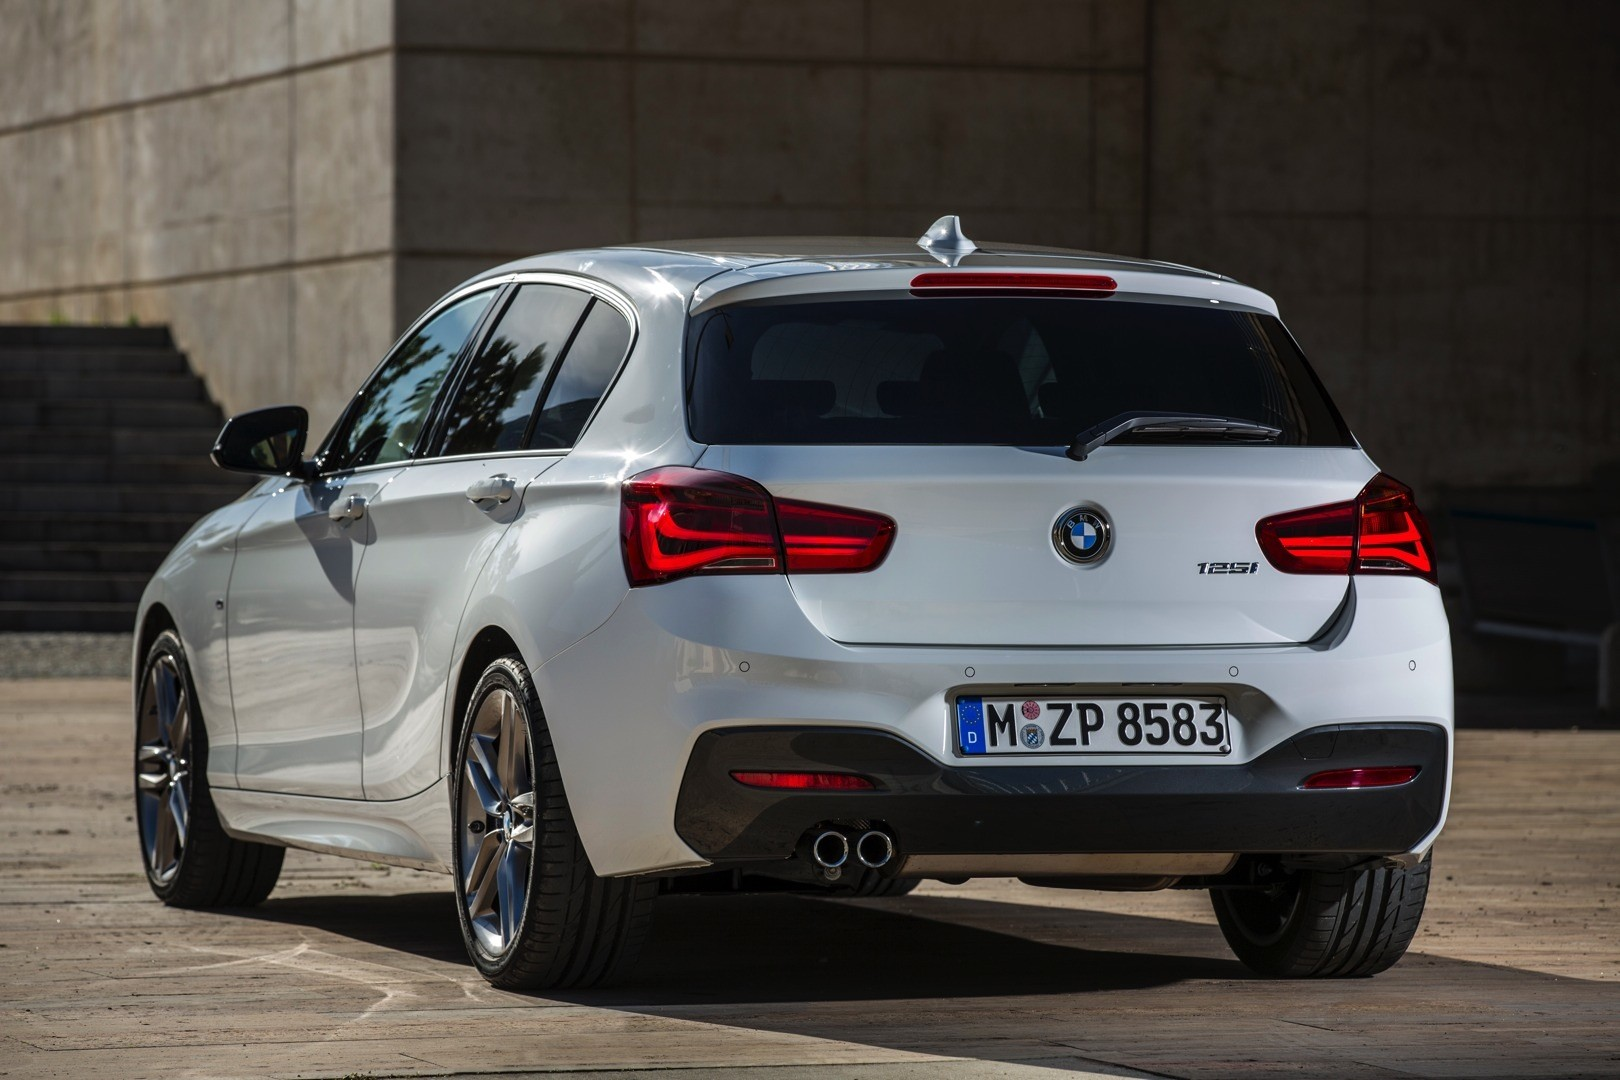 2015 BMW 1 Series Facelift Revealed with New Design and ...